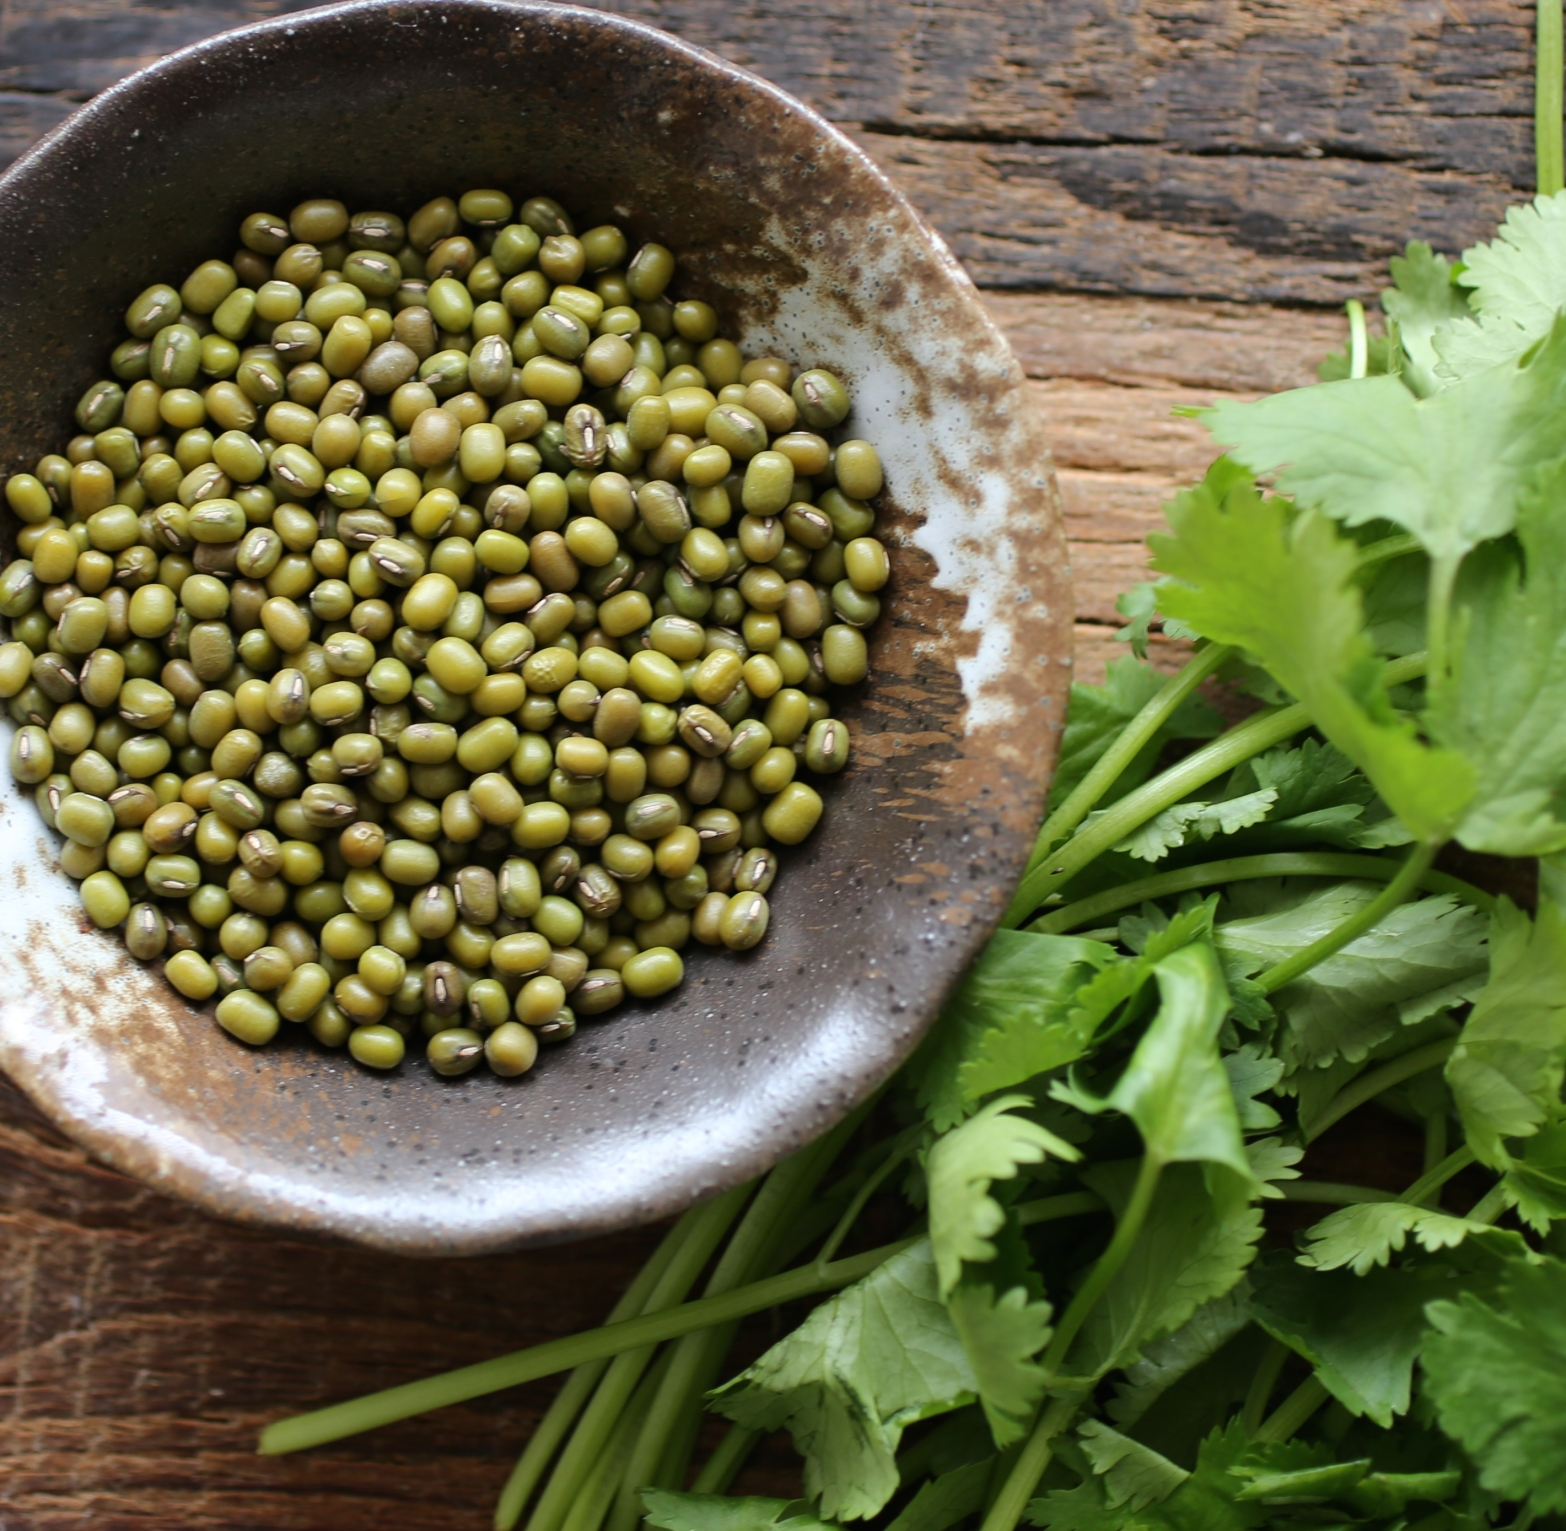 mung beans Mung beans present the greatest challenges for the home sprouter, but they are very fun to grow sprouts,sprouts,sprouts,sprouts,sprouts organic mung bean sprouts.